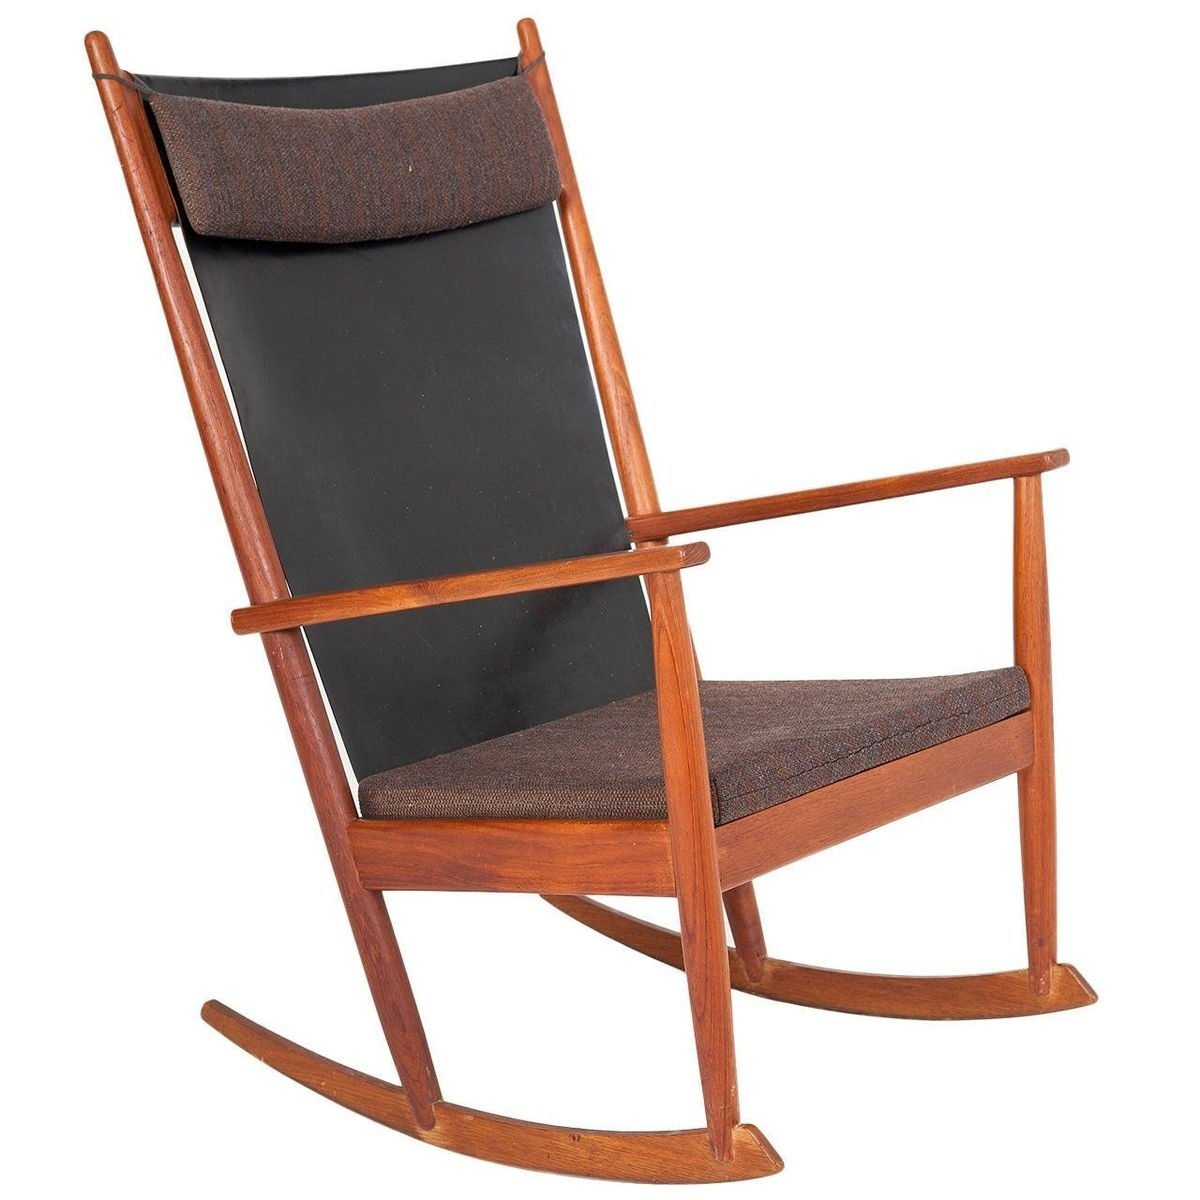 Inspiration about Vintage Rocking Chair In Teakhans Olsen For Sale At Pamono Intended For Retro Rocking Chairs (#10 of 15)